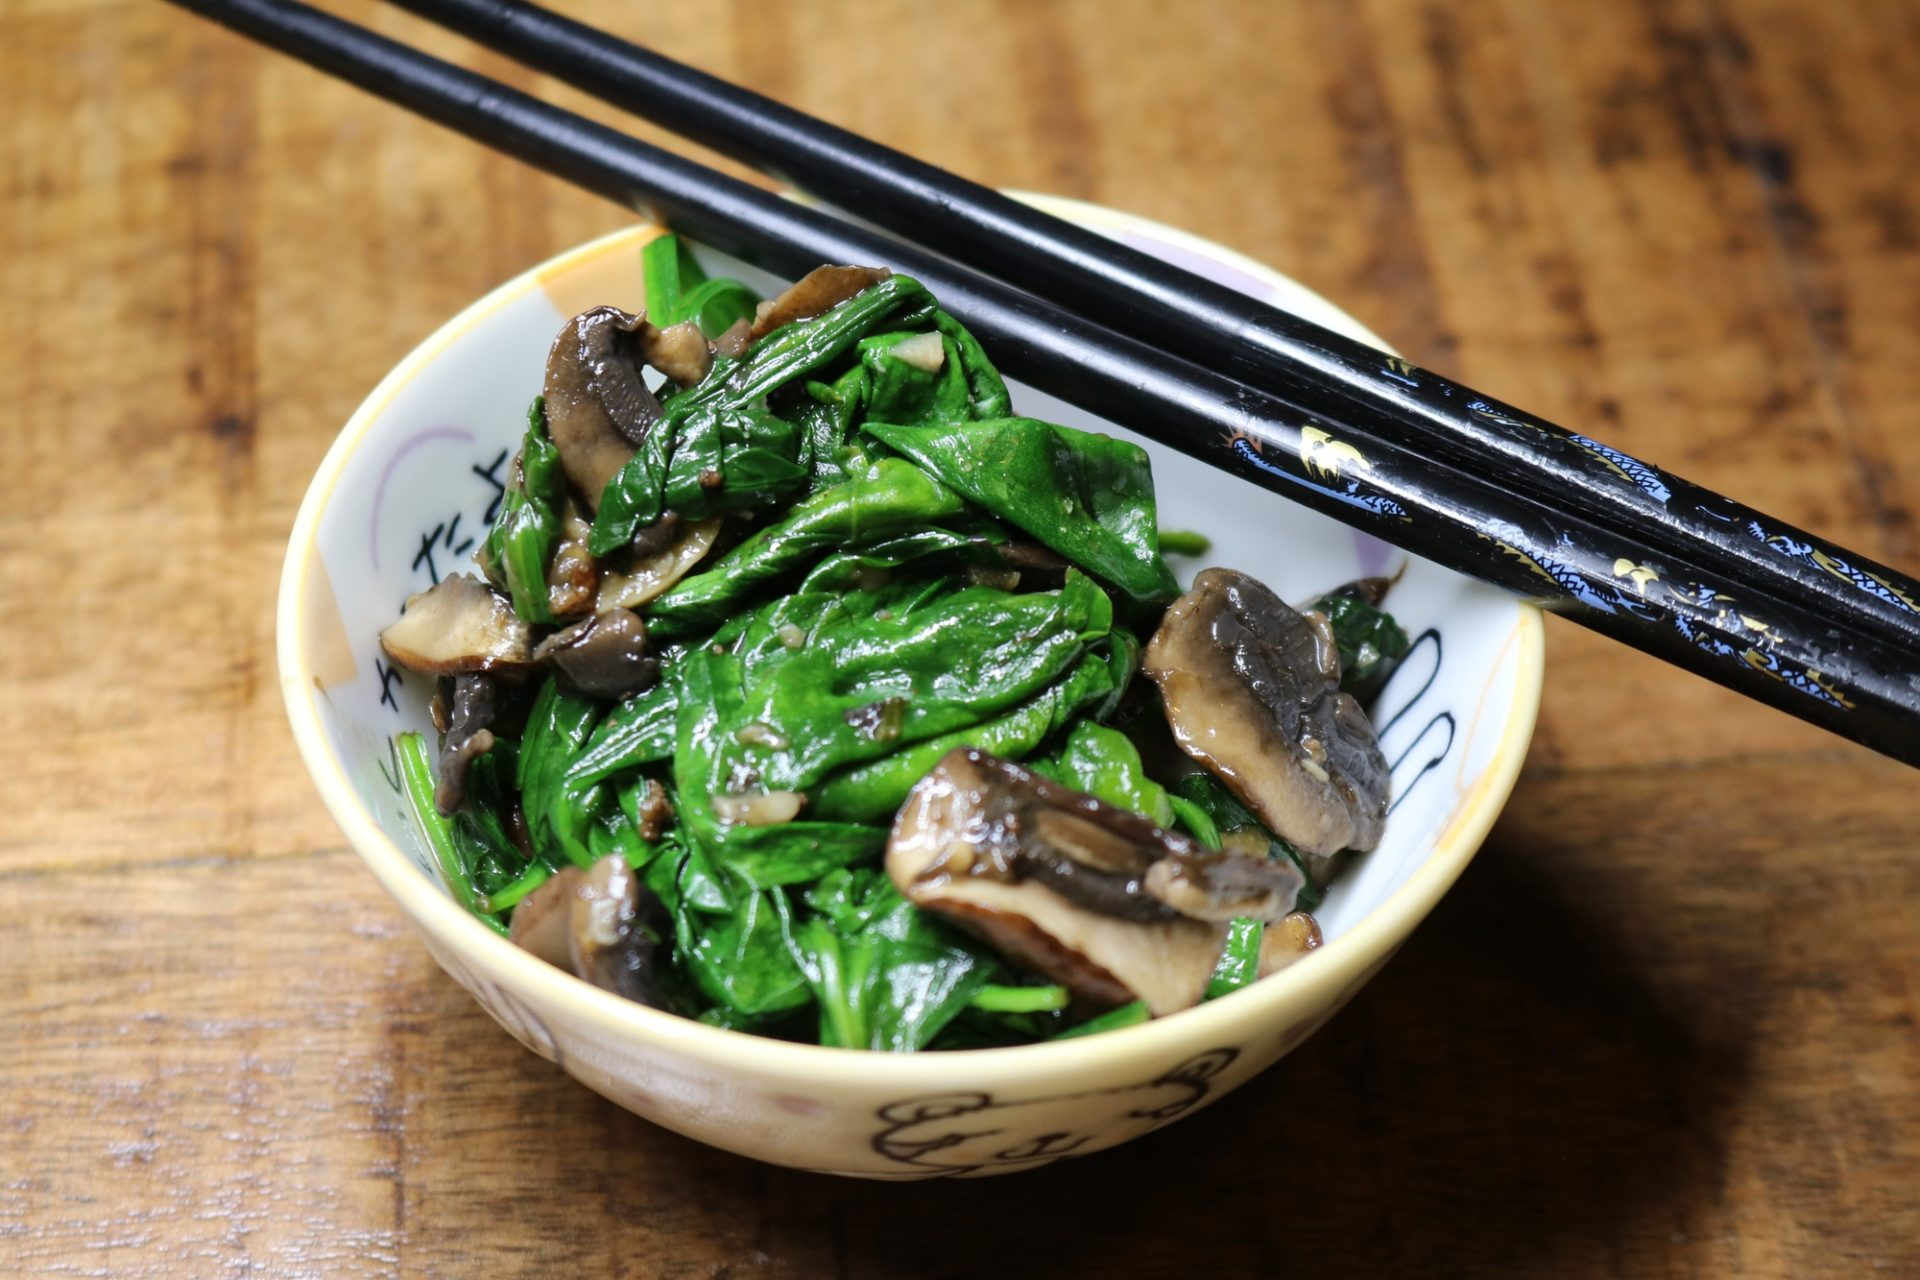 Garlicky Sautéed Spinach with Mushrooms 2